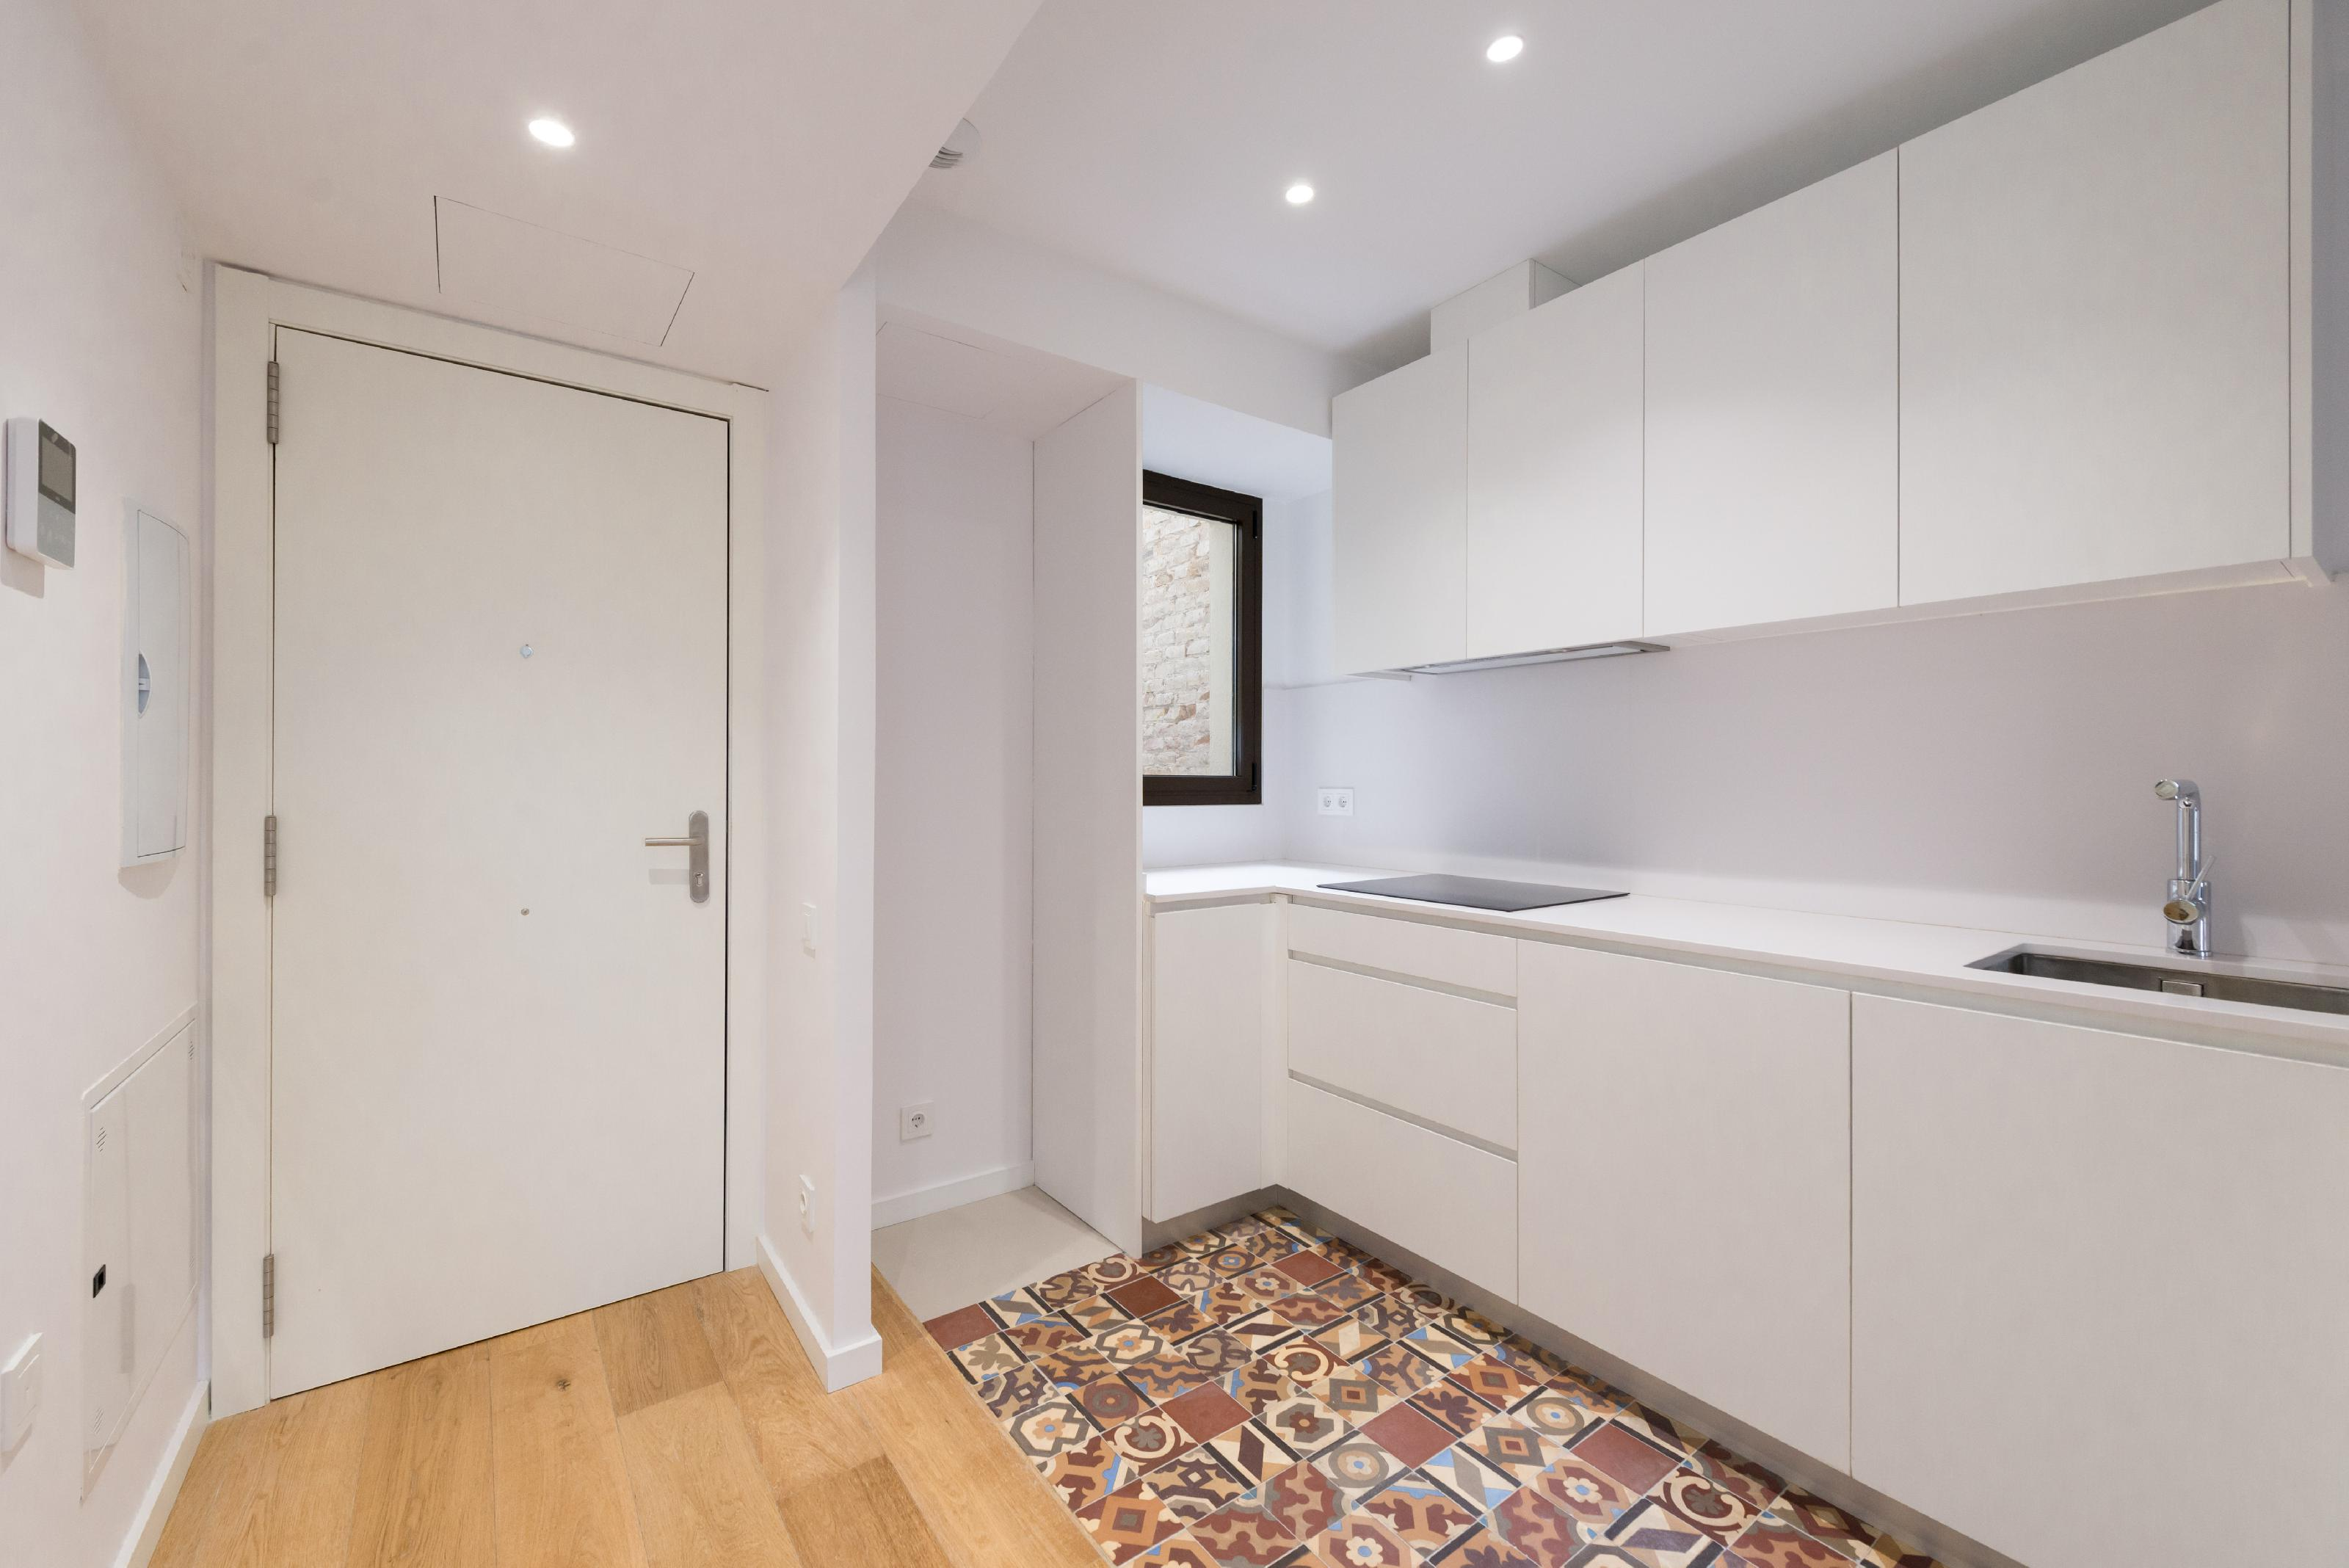 236358 Flat for sale in Eixample, Old Left Eixample 13